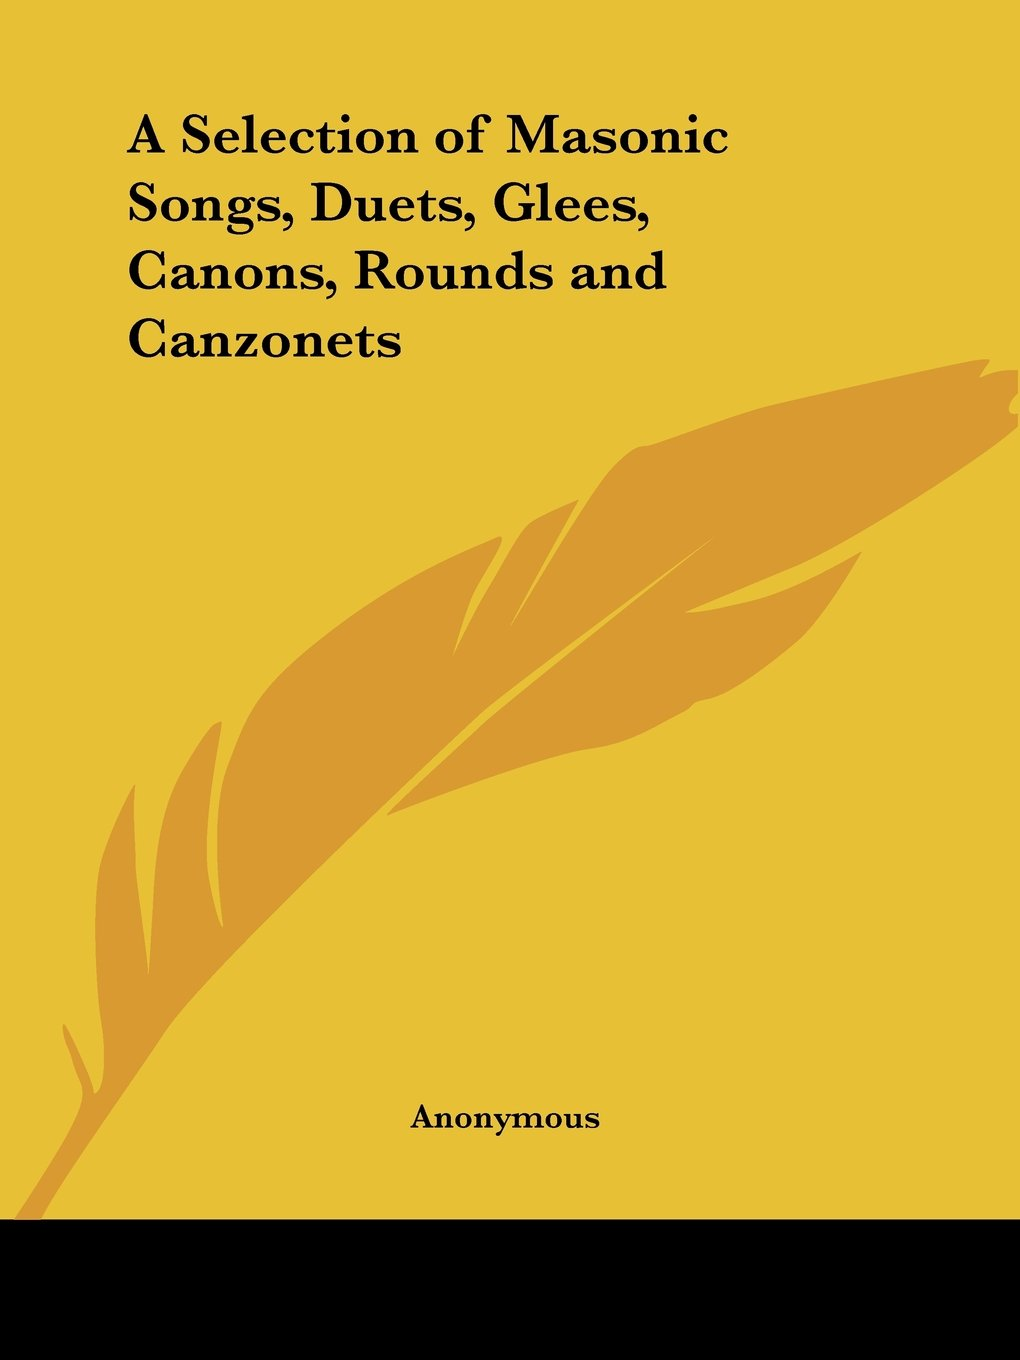 A Selection of Masonic Songs, Duets, Glees, Canons, Rounds and Canzonets PDF ePub fb2 book